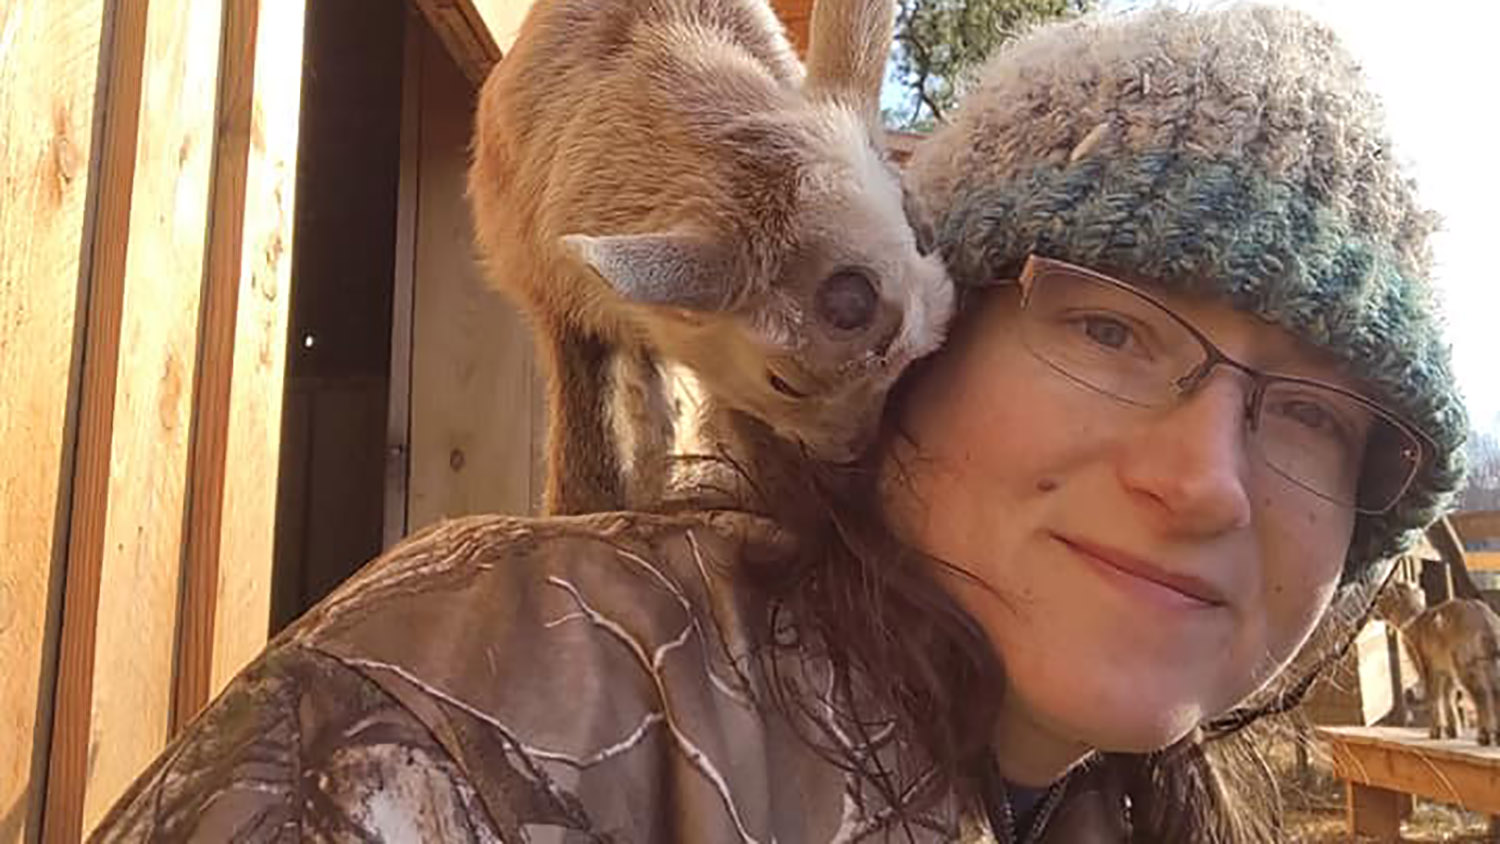 Woman with small goat on her shoulder